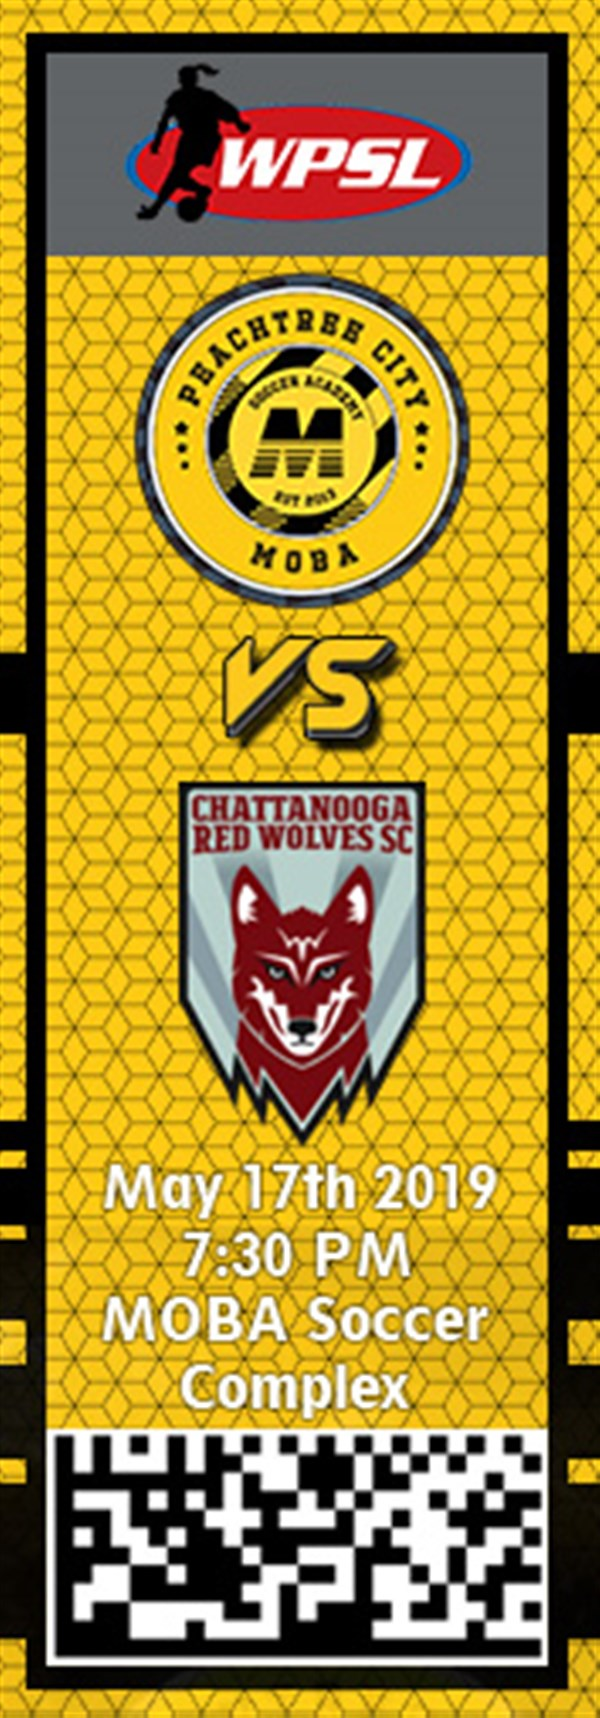 Get Information and buy tickets to PTC MOBA vs. Chattanooga Red Wolves WPSL on MOBA Soccer Academy